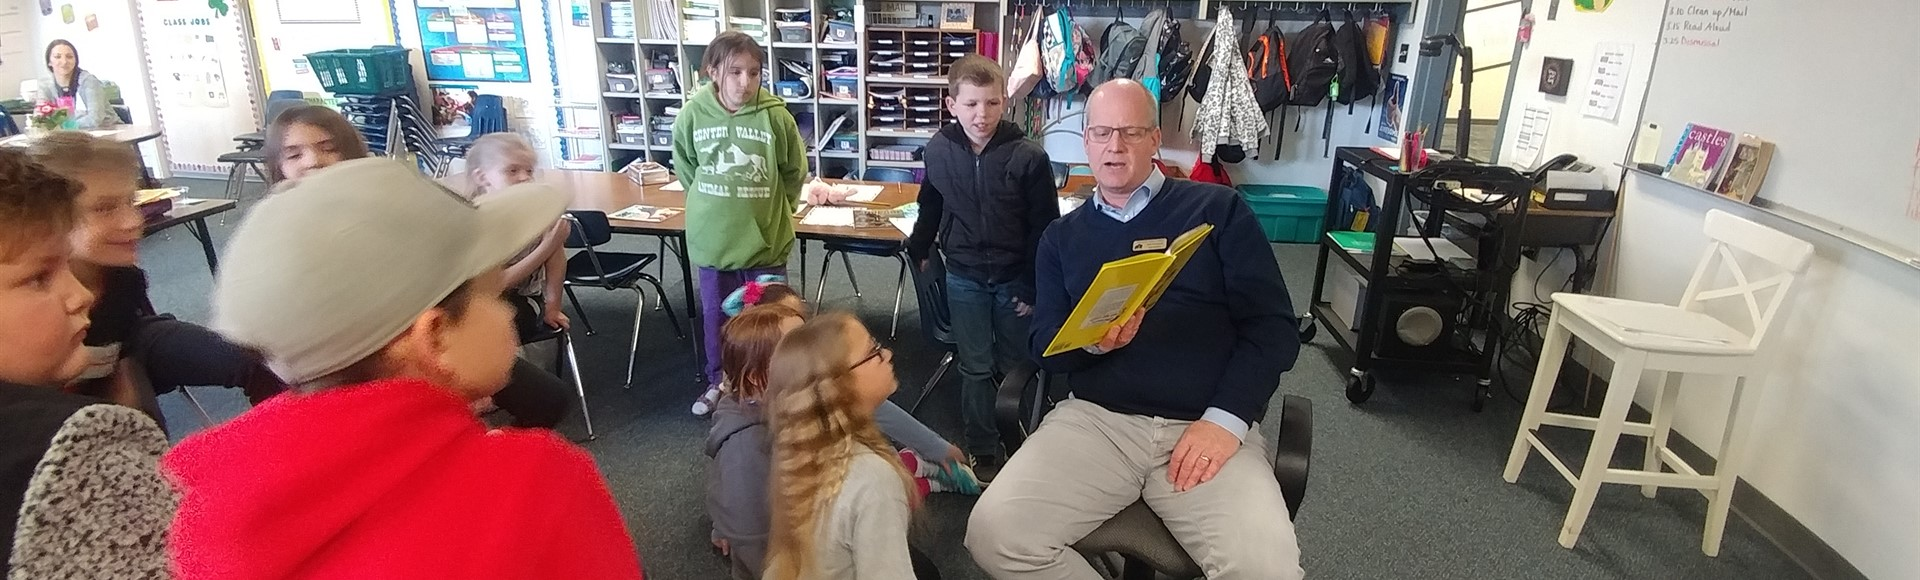 Superintendent Thompson reads to 3rd graders